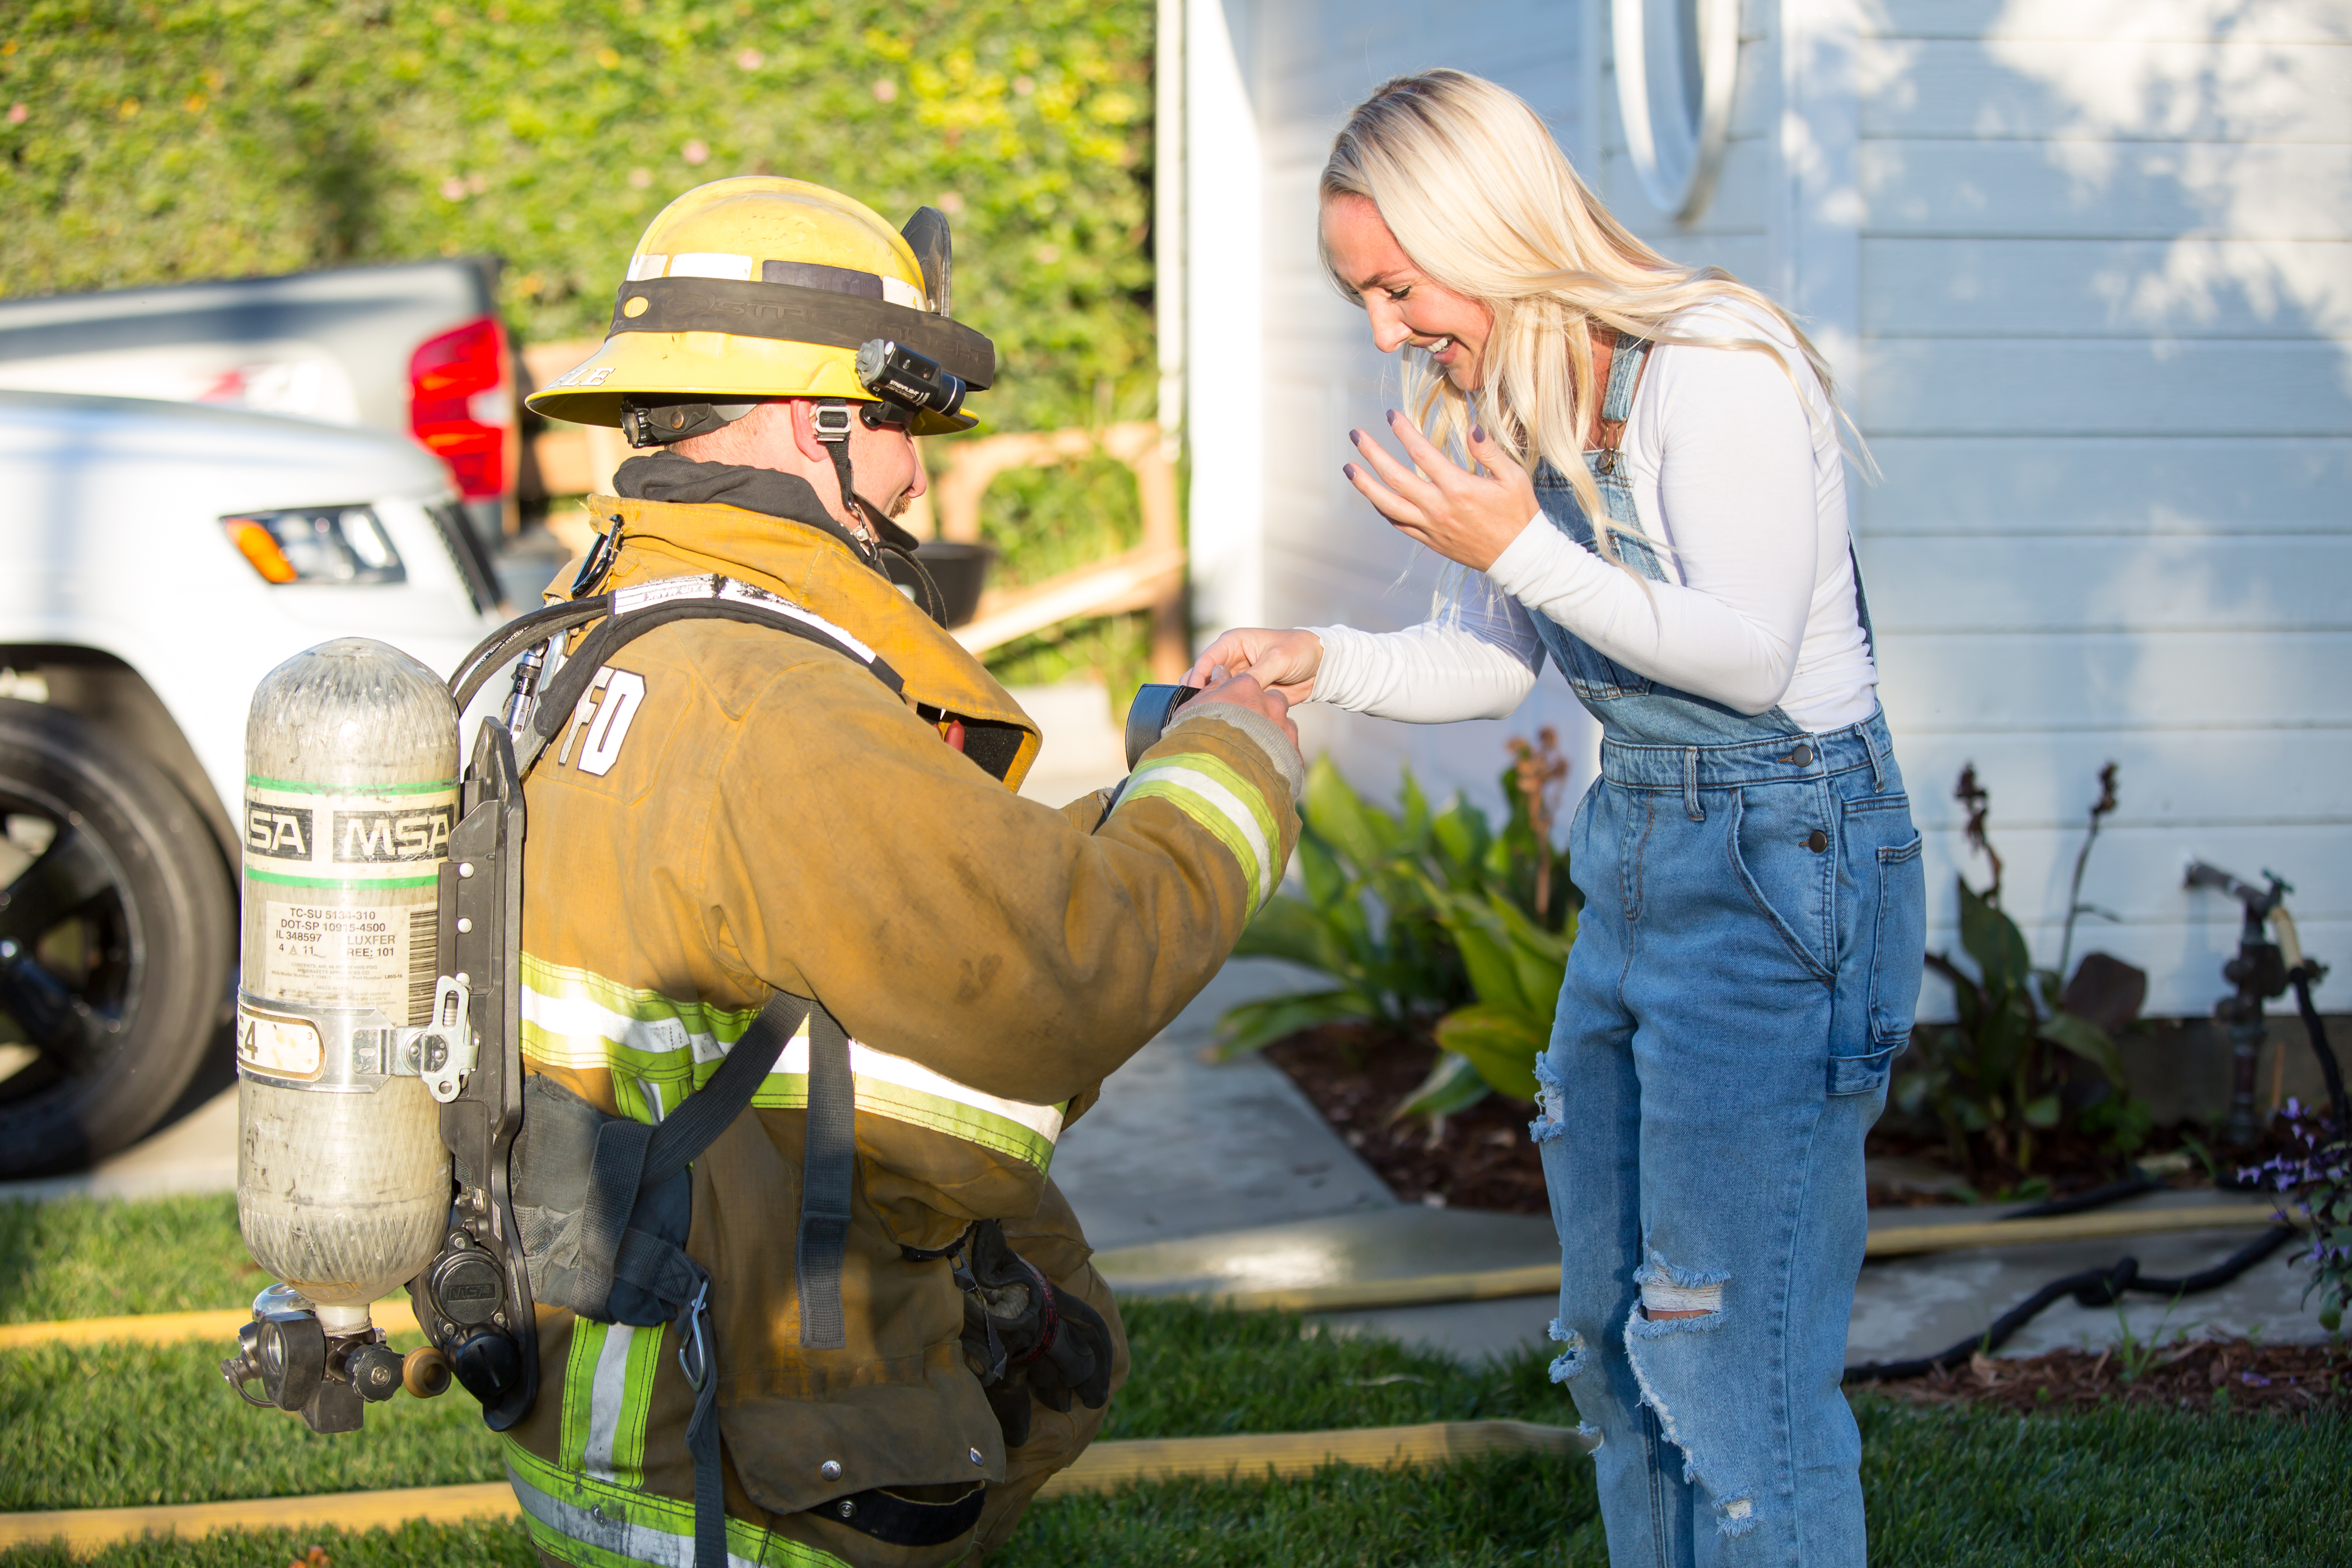 Firefighter stages dramatic blaze in his own home during family party to propose to girlfriend